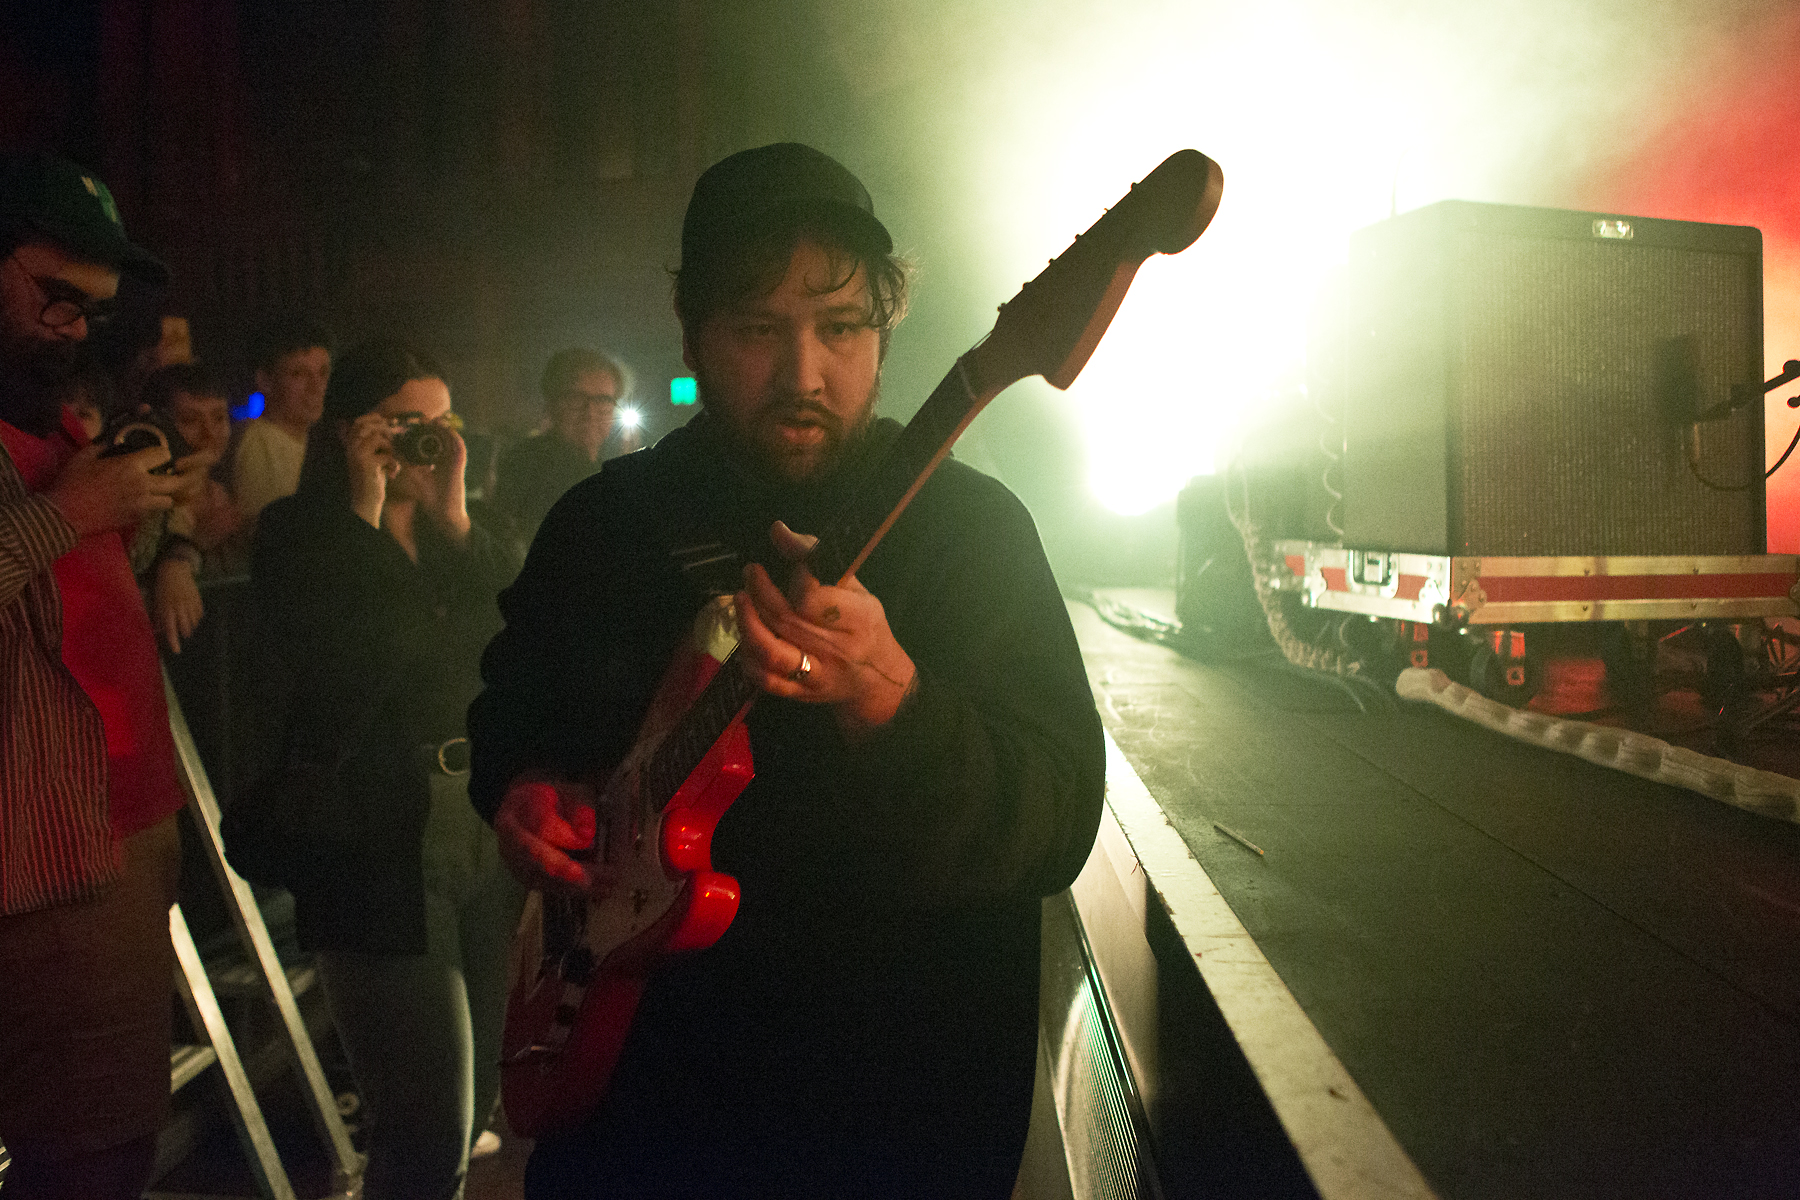 Live Review & Gallery: Unknown Mortal Orchestra @ The Forum – 12 09